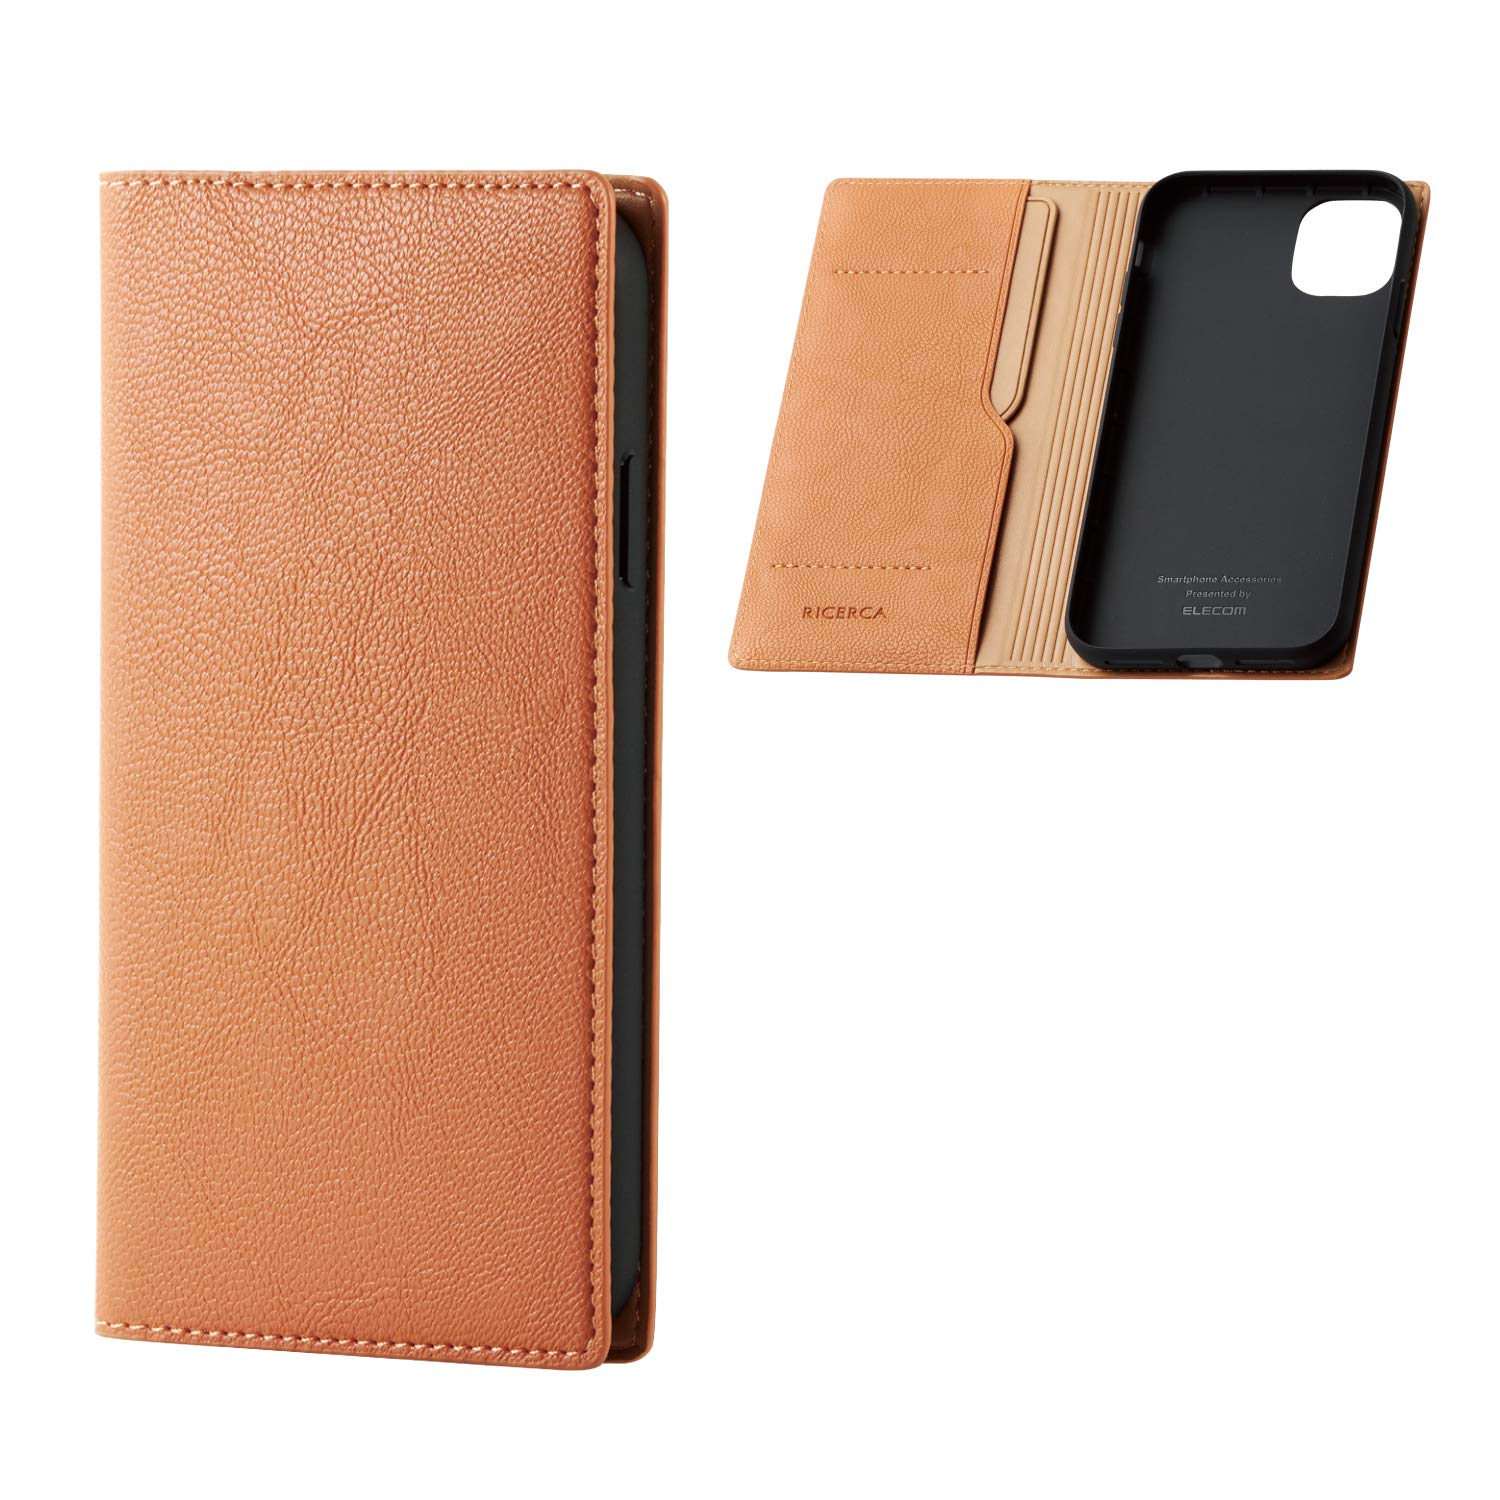 ELECOM Premium PU Leather Case Soft & Smooth Texture Flap Type/Compatible with iPhone 11/ Orange Squash/PM-A19CPLFYILDR